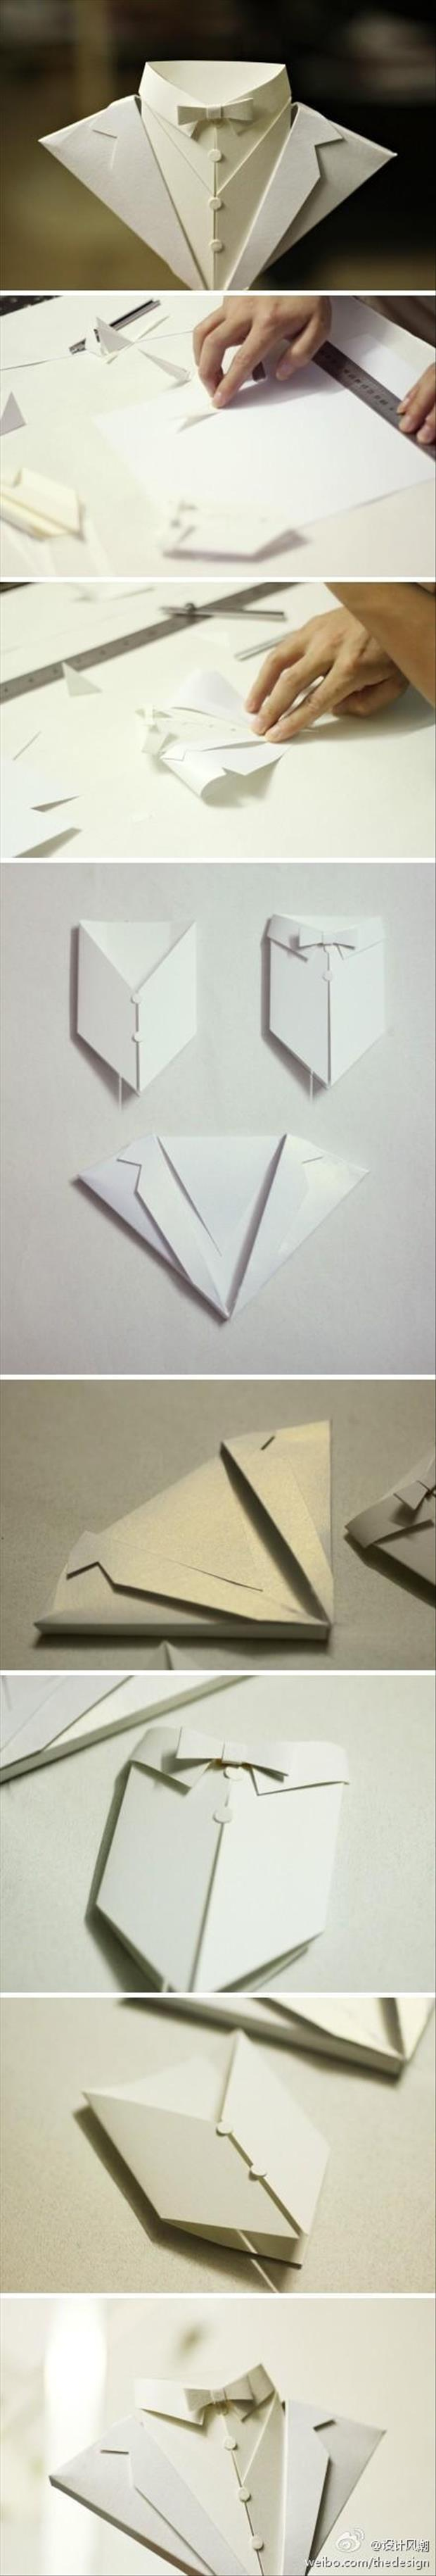 how to make a paper suit